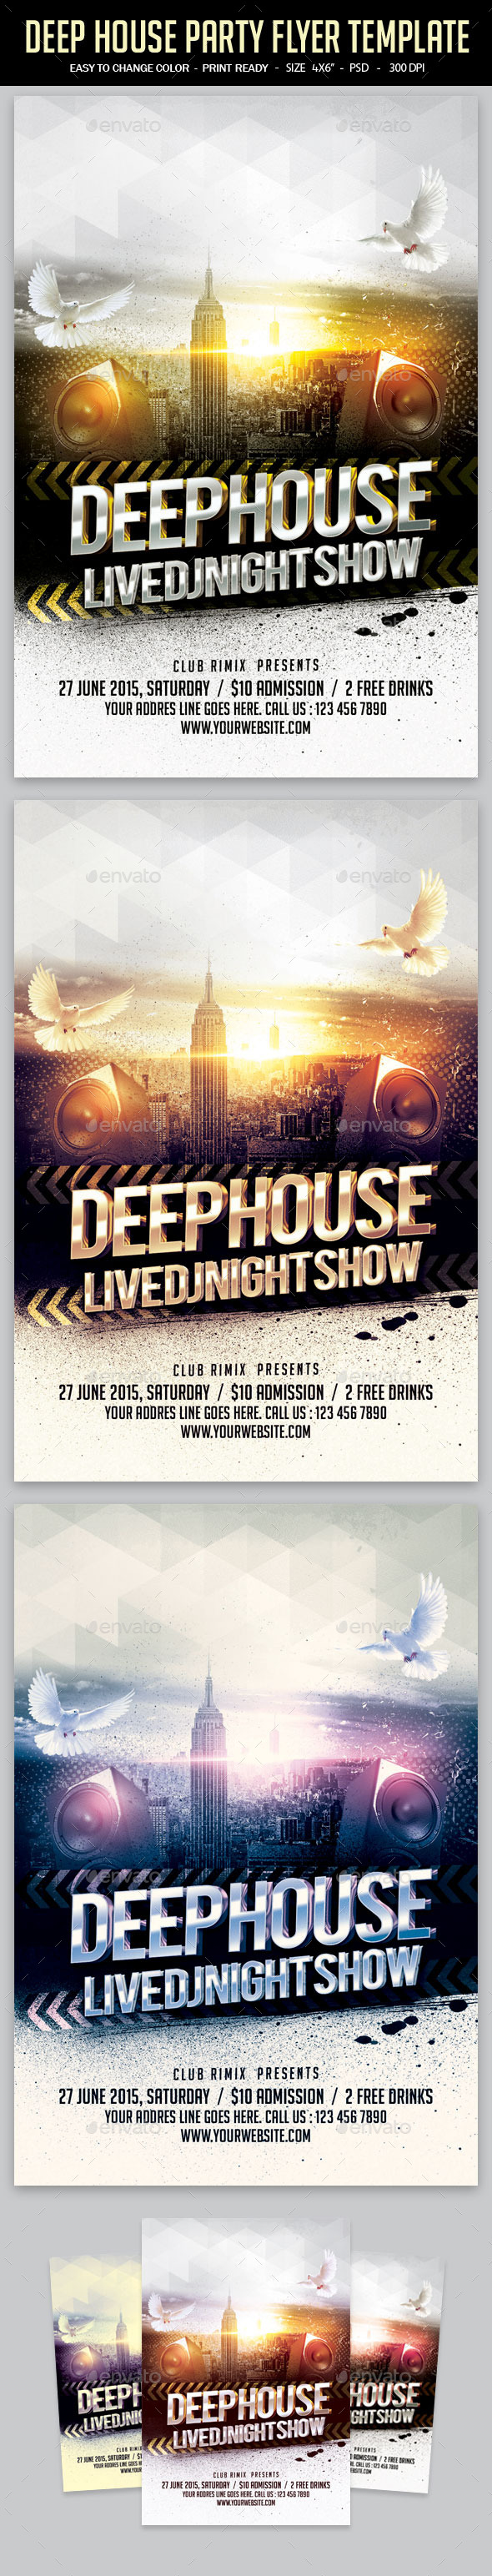 Deep House Party Flyer Template - Clubs & Parties Events